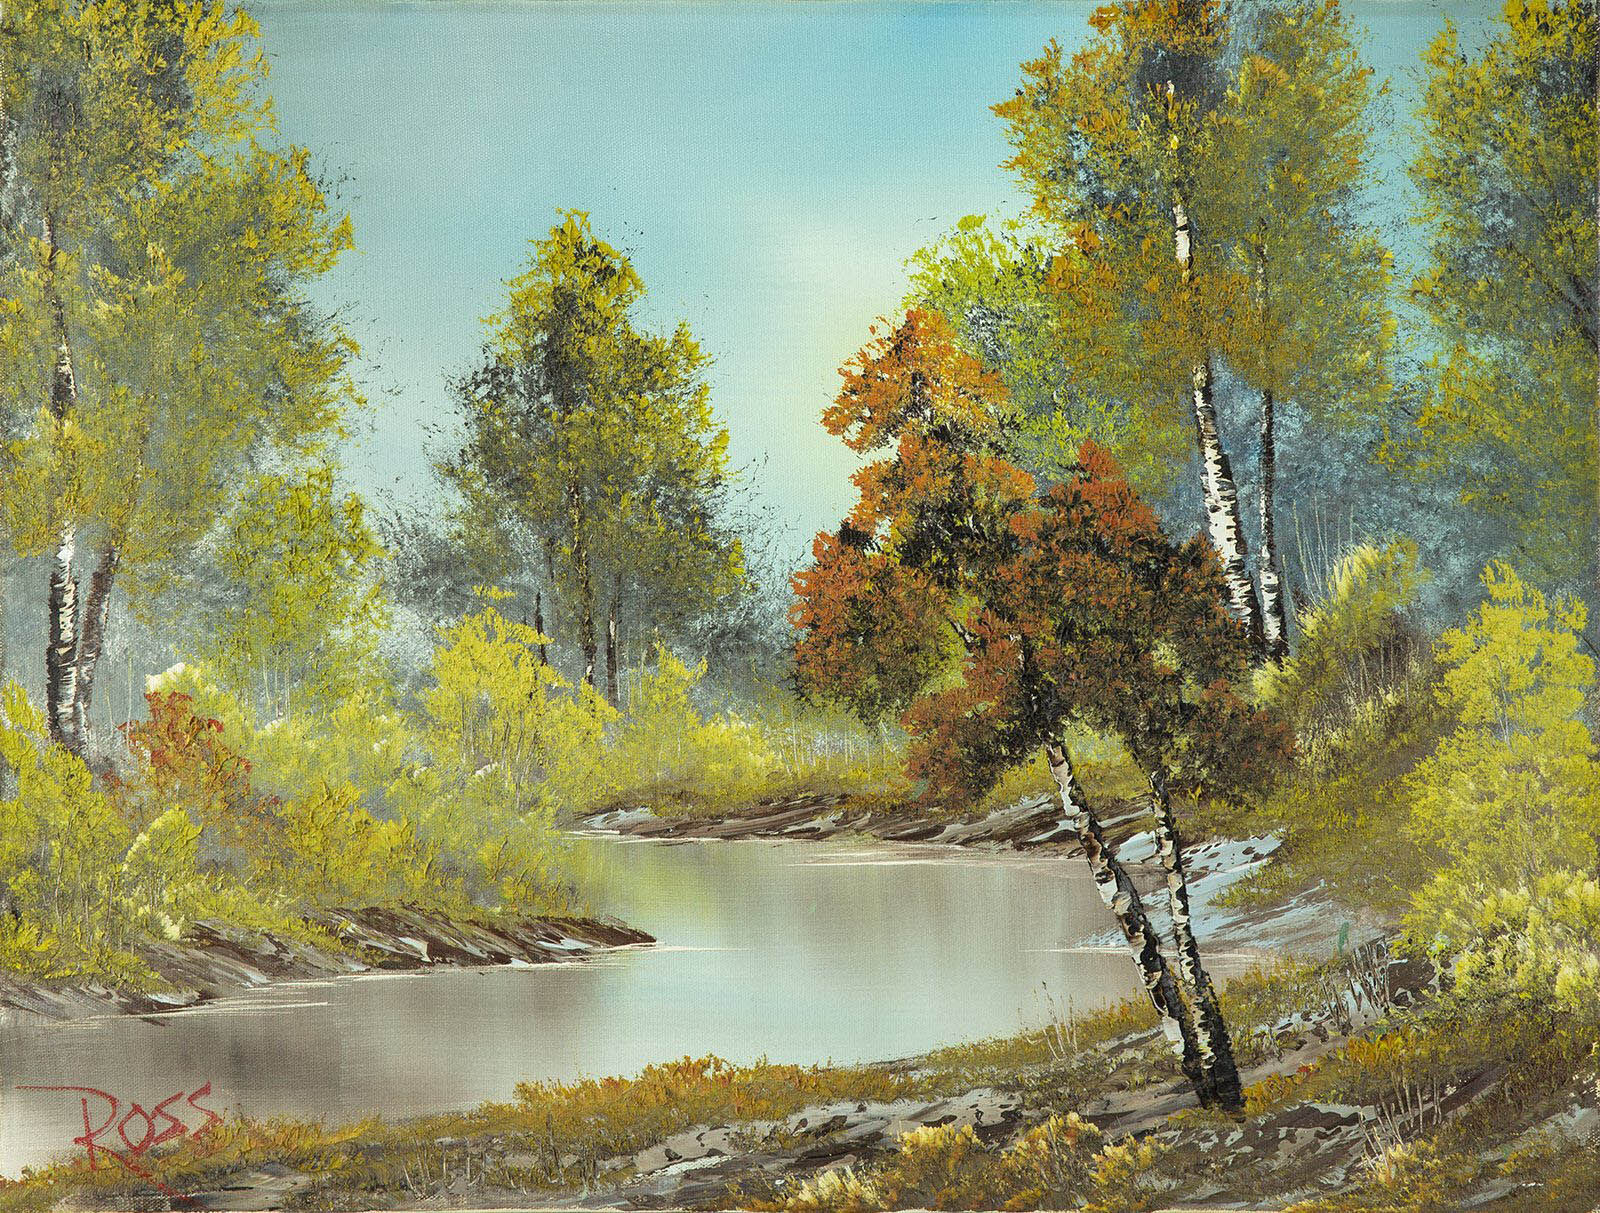 Bob Ross, Lazy River, Original Oil Painting, 1982. Image Used with Permission © Modern Artifact.